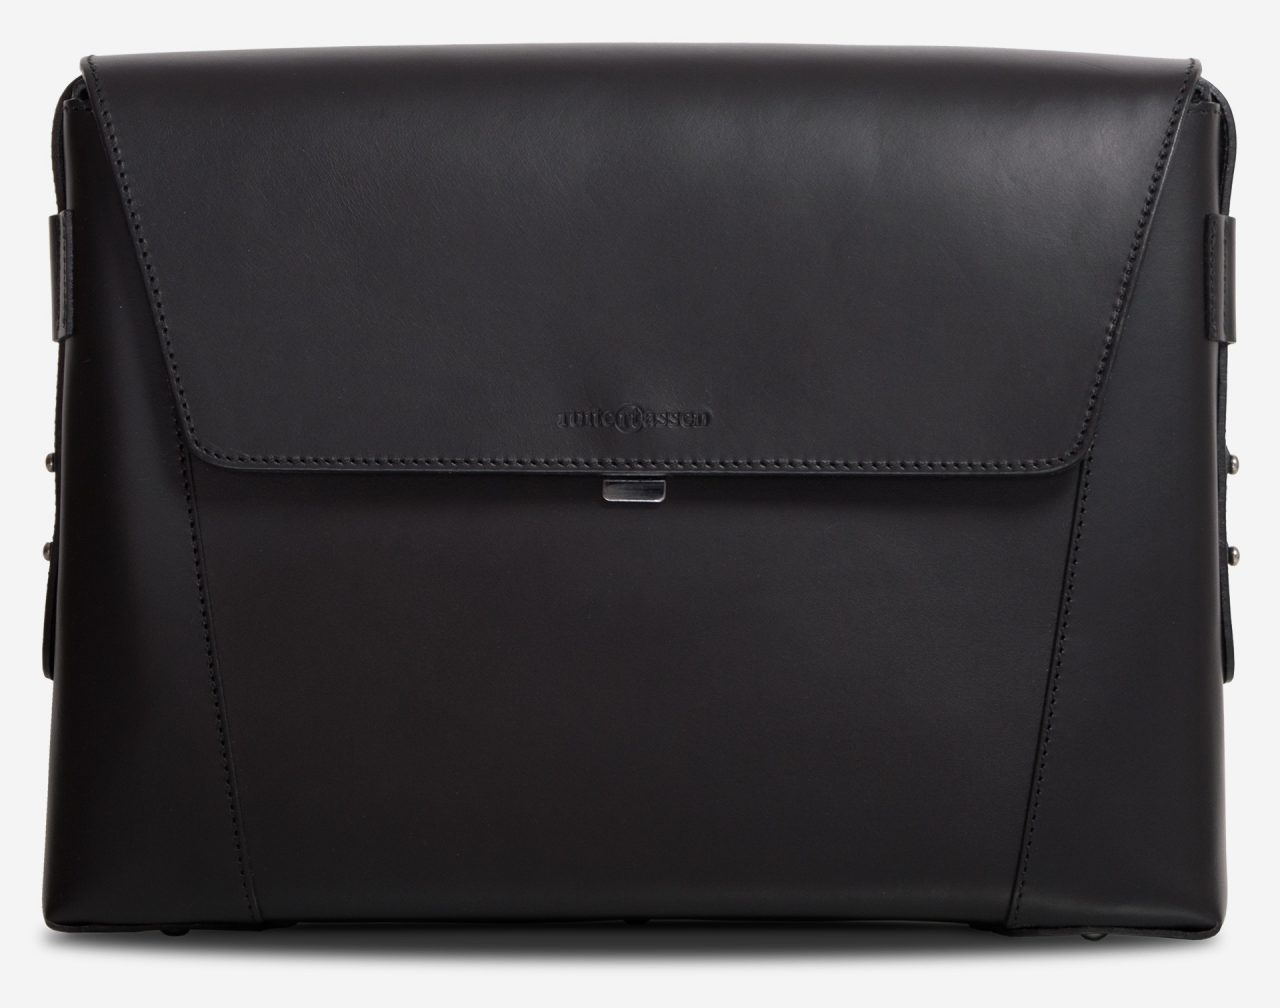 Front view of the slim vegetable-tanned black leather briefcase bag.